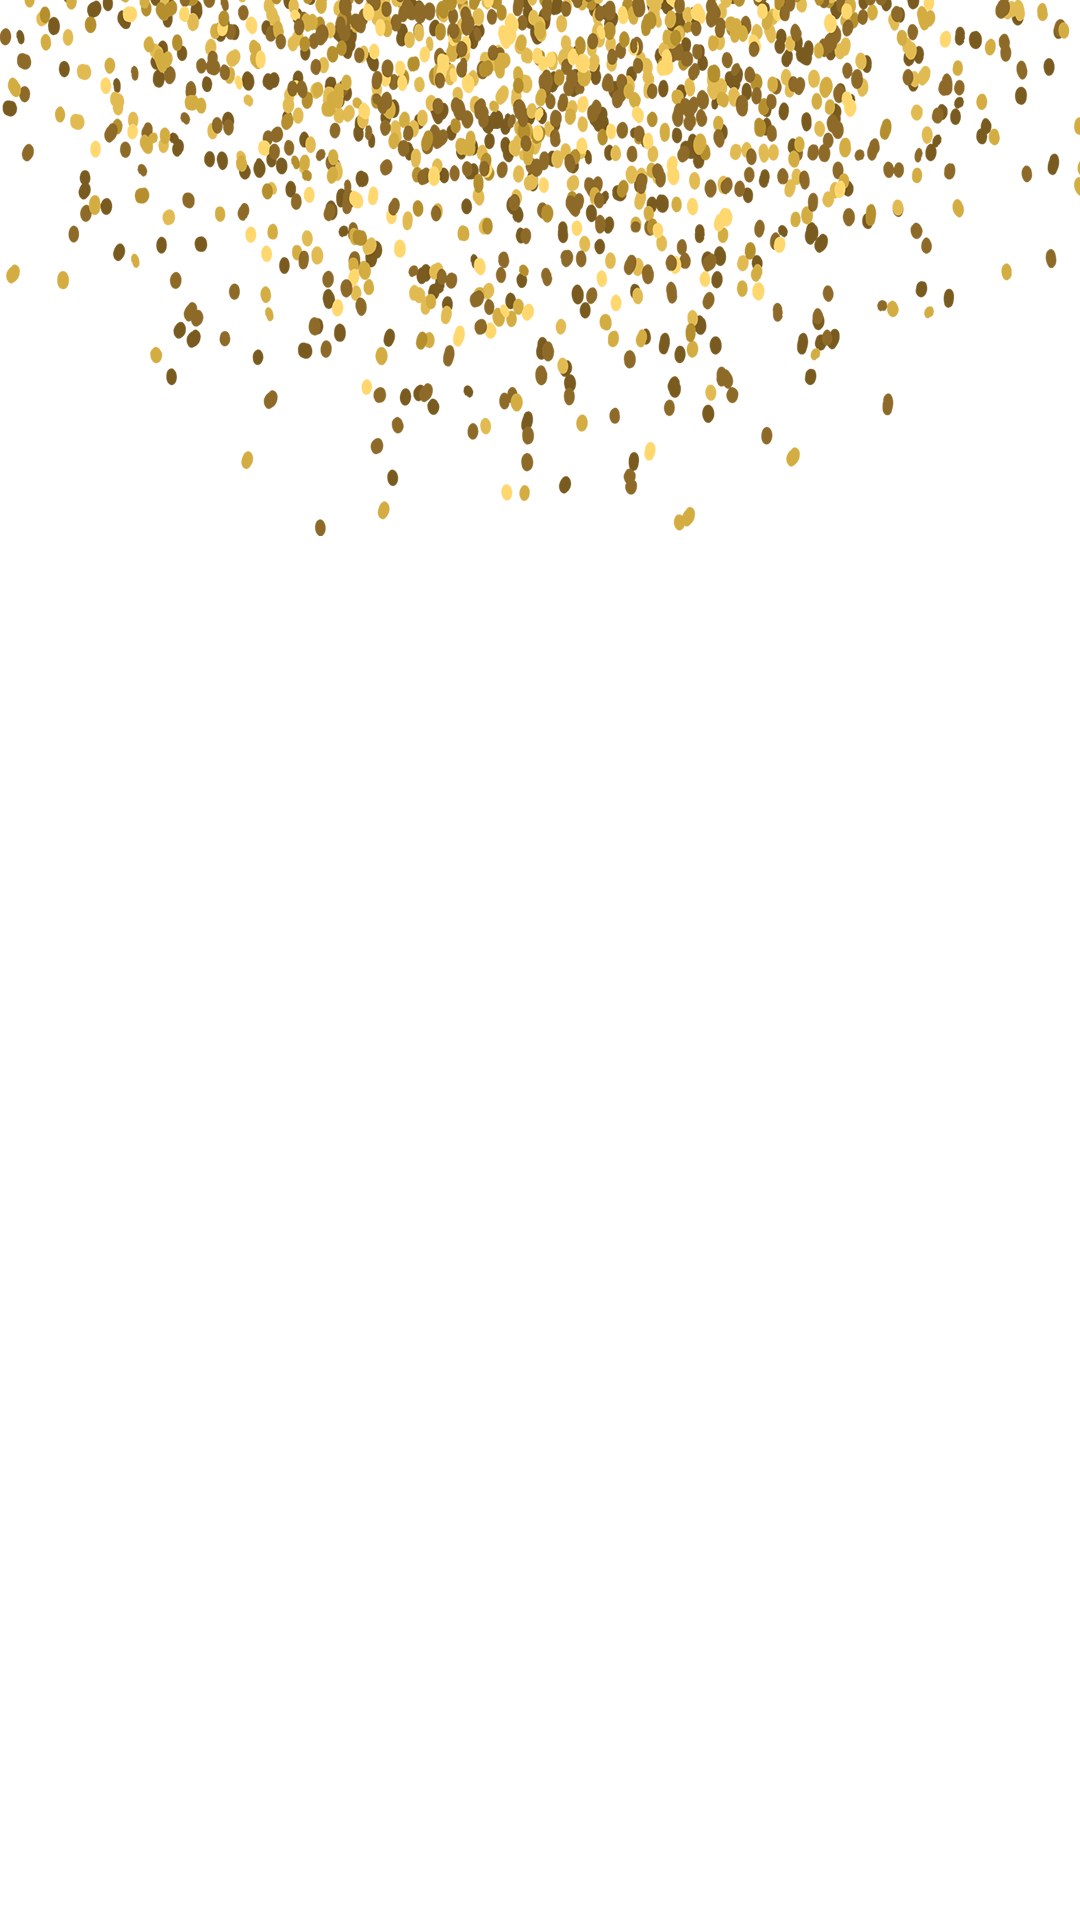 Golden Sparkles Bachelorette Snapchat Filter | Geofilter Maker on